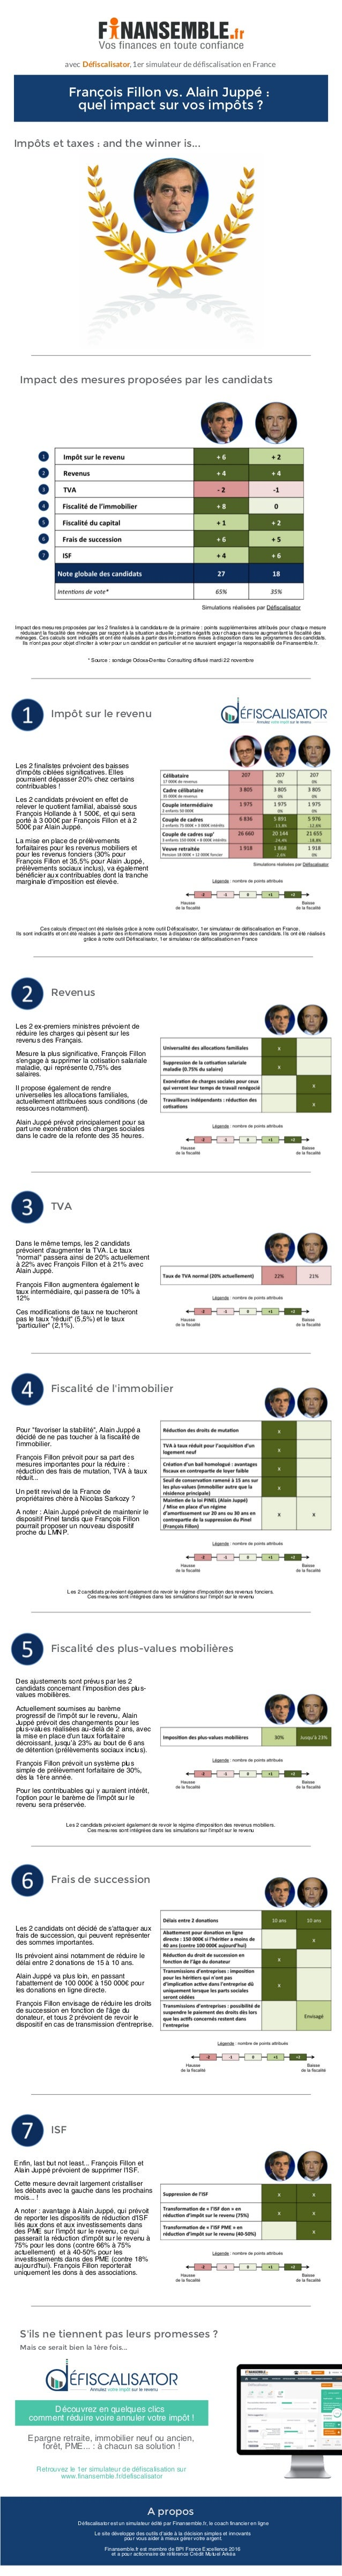 François Fillon vs. Alain Juppé : quel impact sur vos impôts ? Impôts et taxes : and the winner is... Défiscalisatoravec ,...